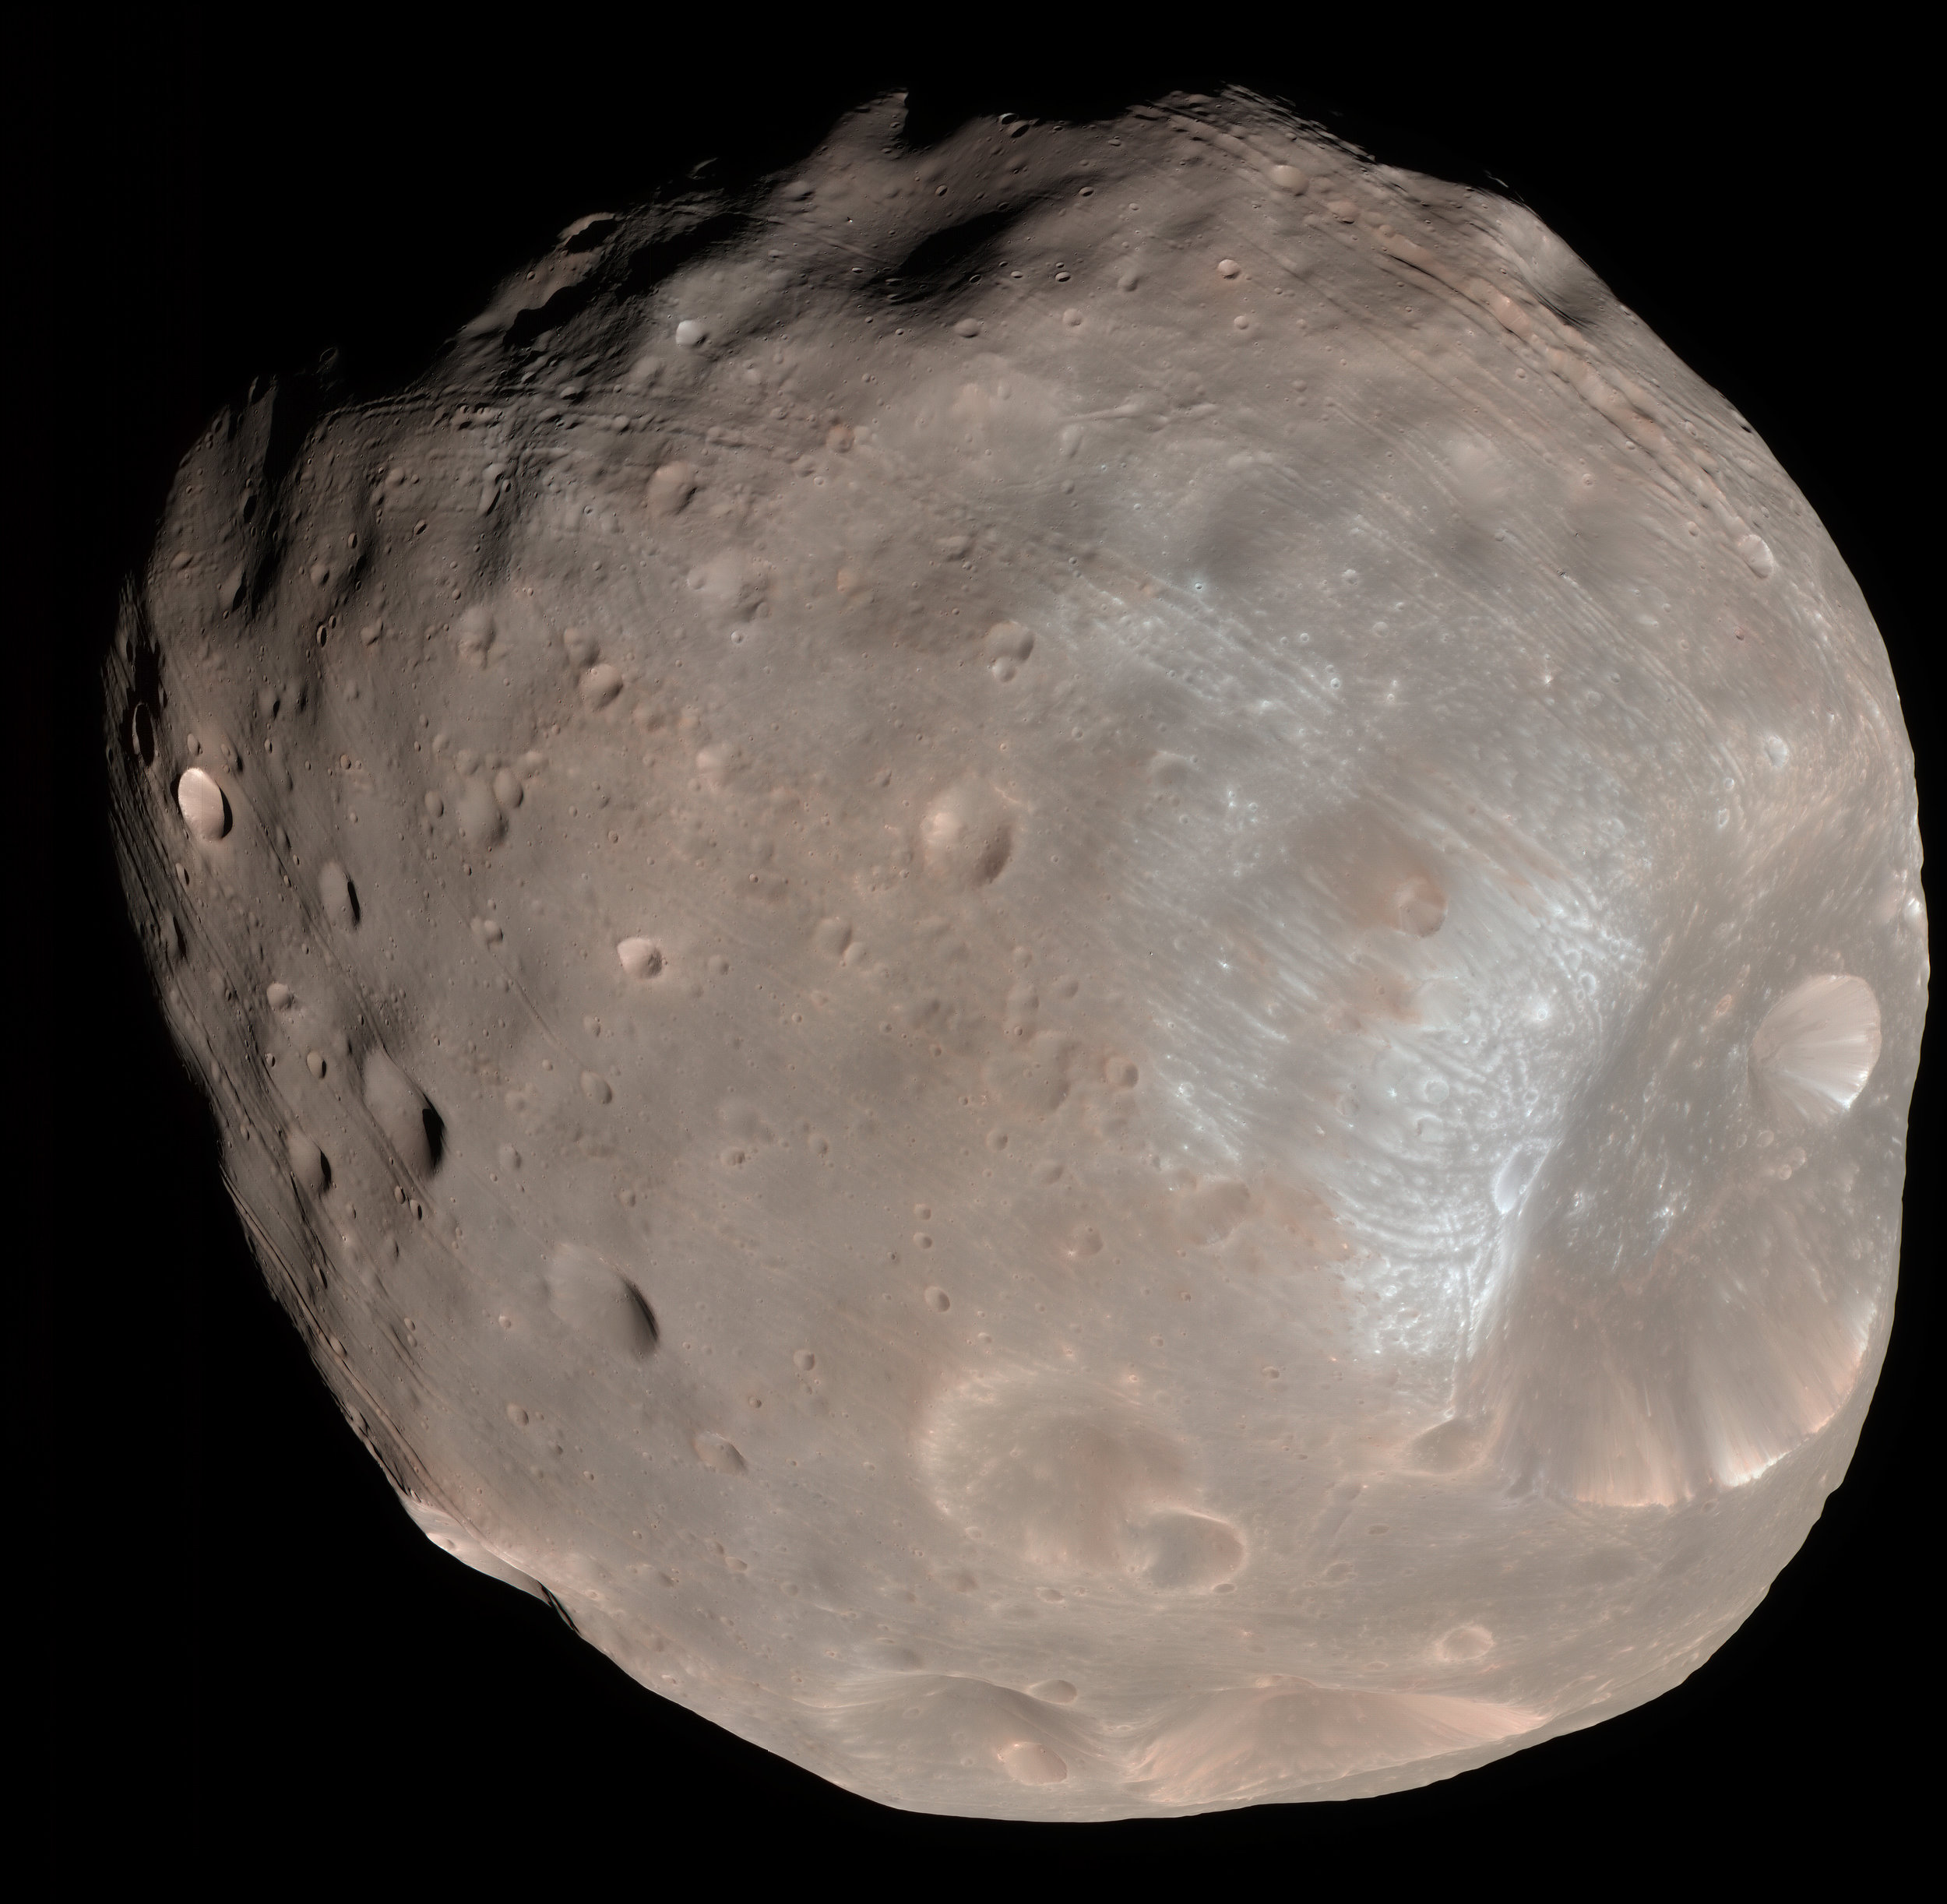 Dr. Ivy Curren  talks about Mars' moon Phobos, and how grooves on its surface indicate that the interior may be fractured. This small, mysterious moon is covered in faults, making it a dicey place for future missions to land.  Enhanced-color image of Phobos, taken by the Mars Reconnaissance Orbiter. Credit: NASA / JPL-Caltech / University of Arizona.